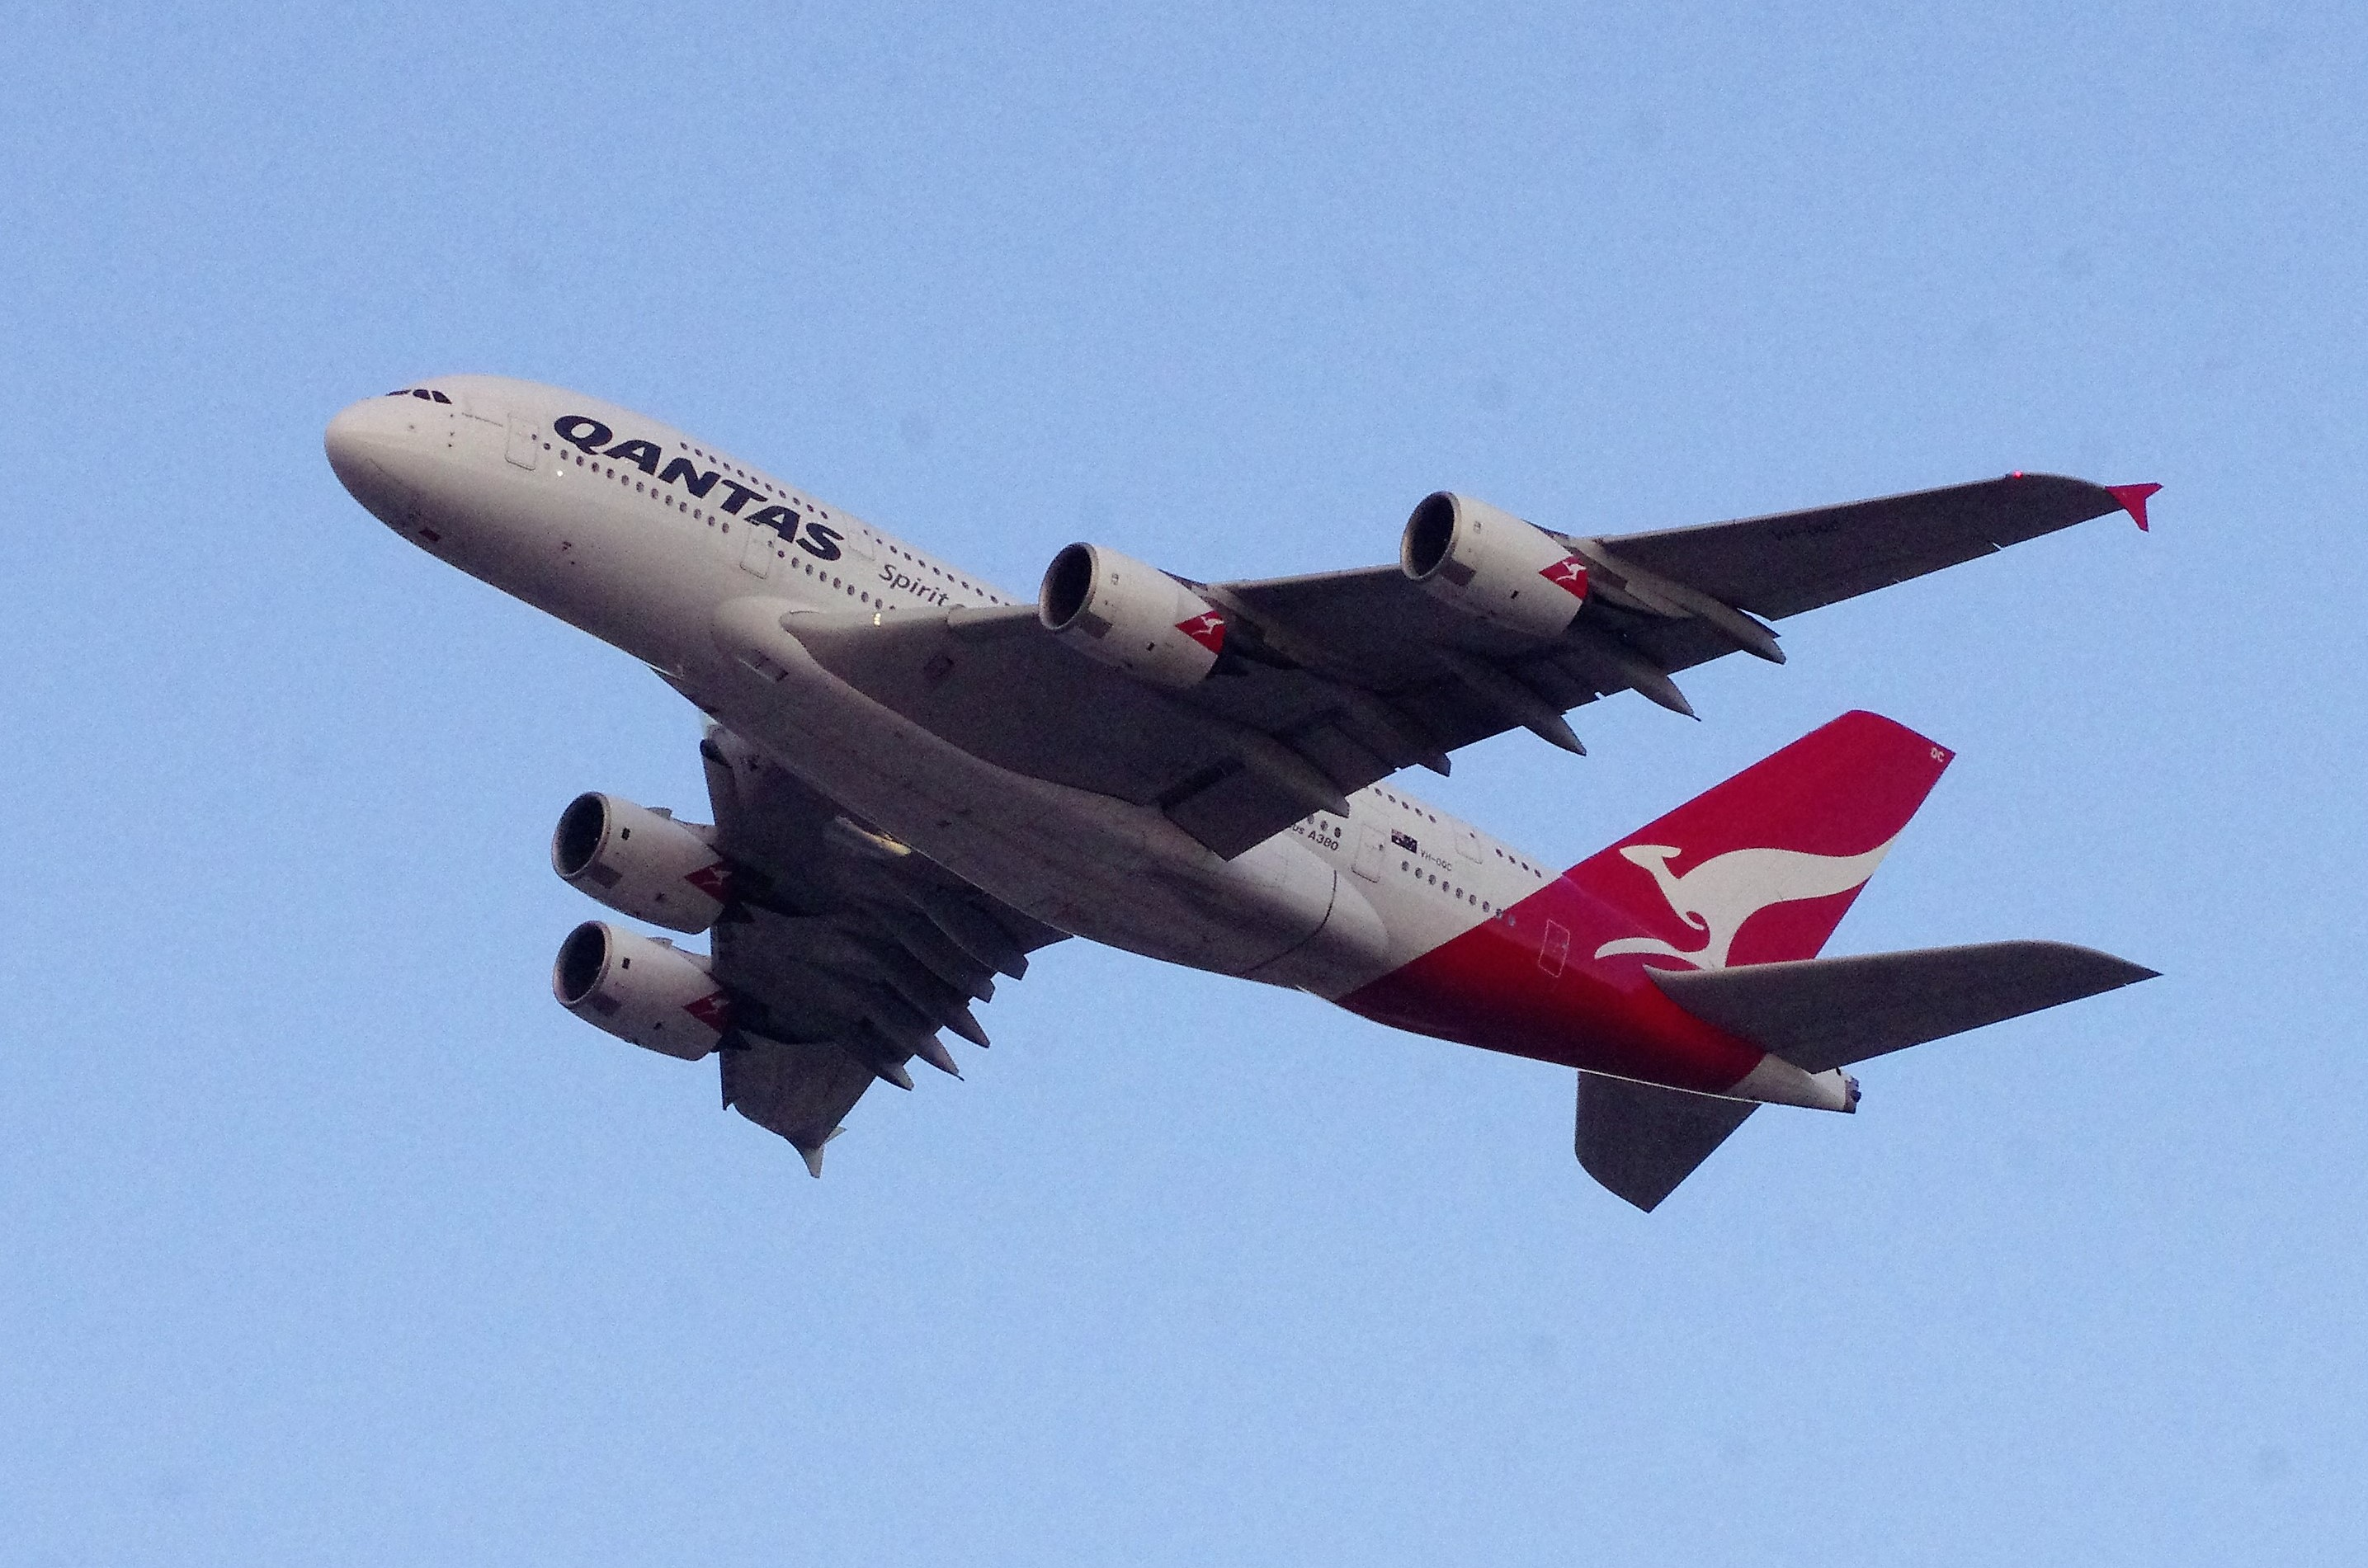 Qantas offers incentives for fully vaccinated Australians